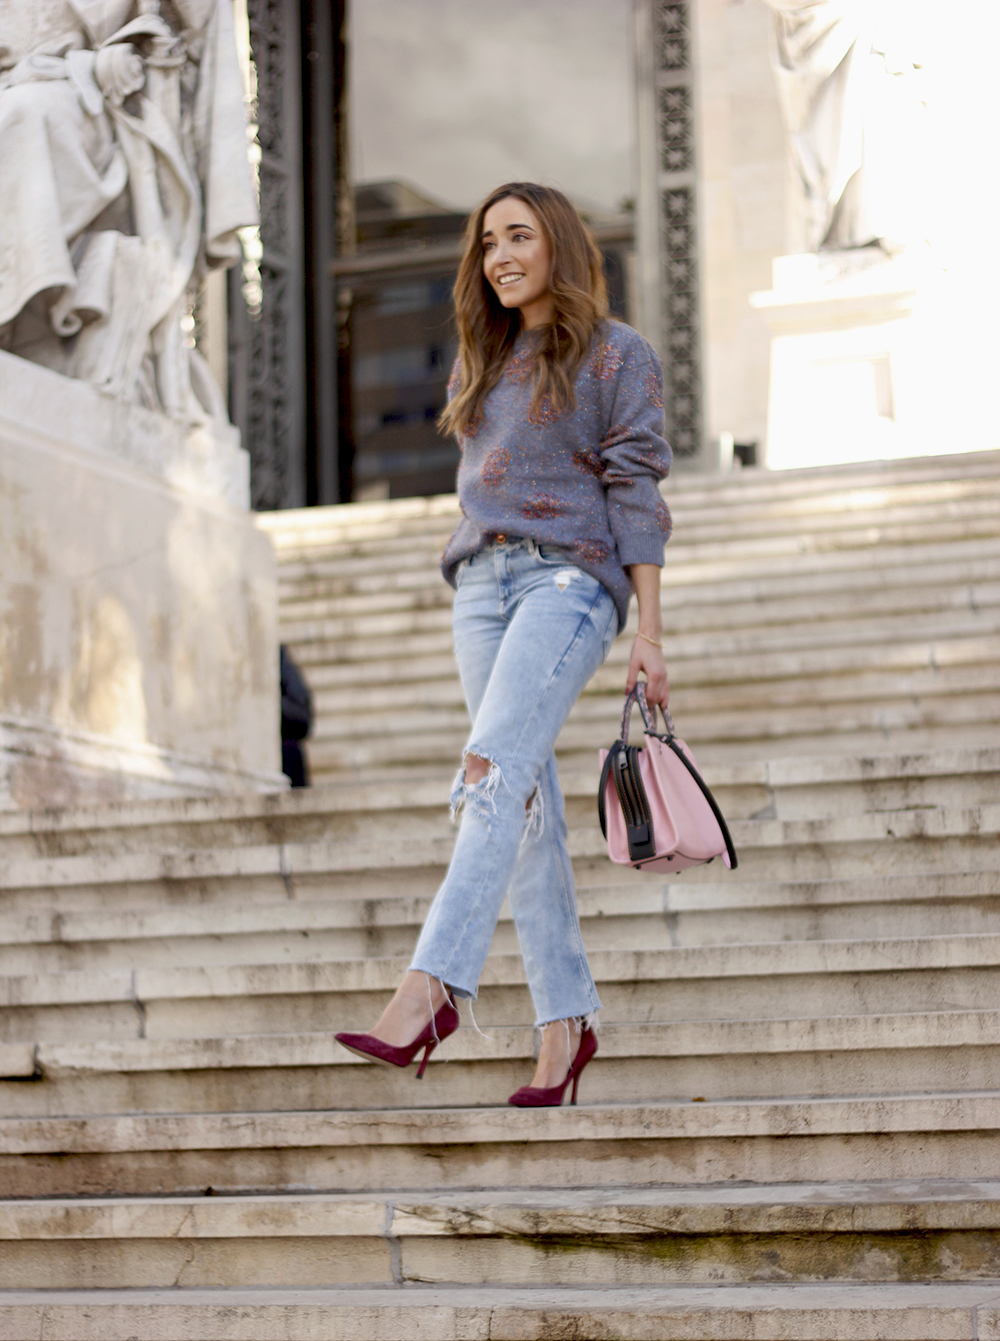 GRAY CHRISTMAS JERSEY ripped jeans pink coaach bag burgundy heels street style fall outfit 20186942